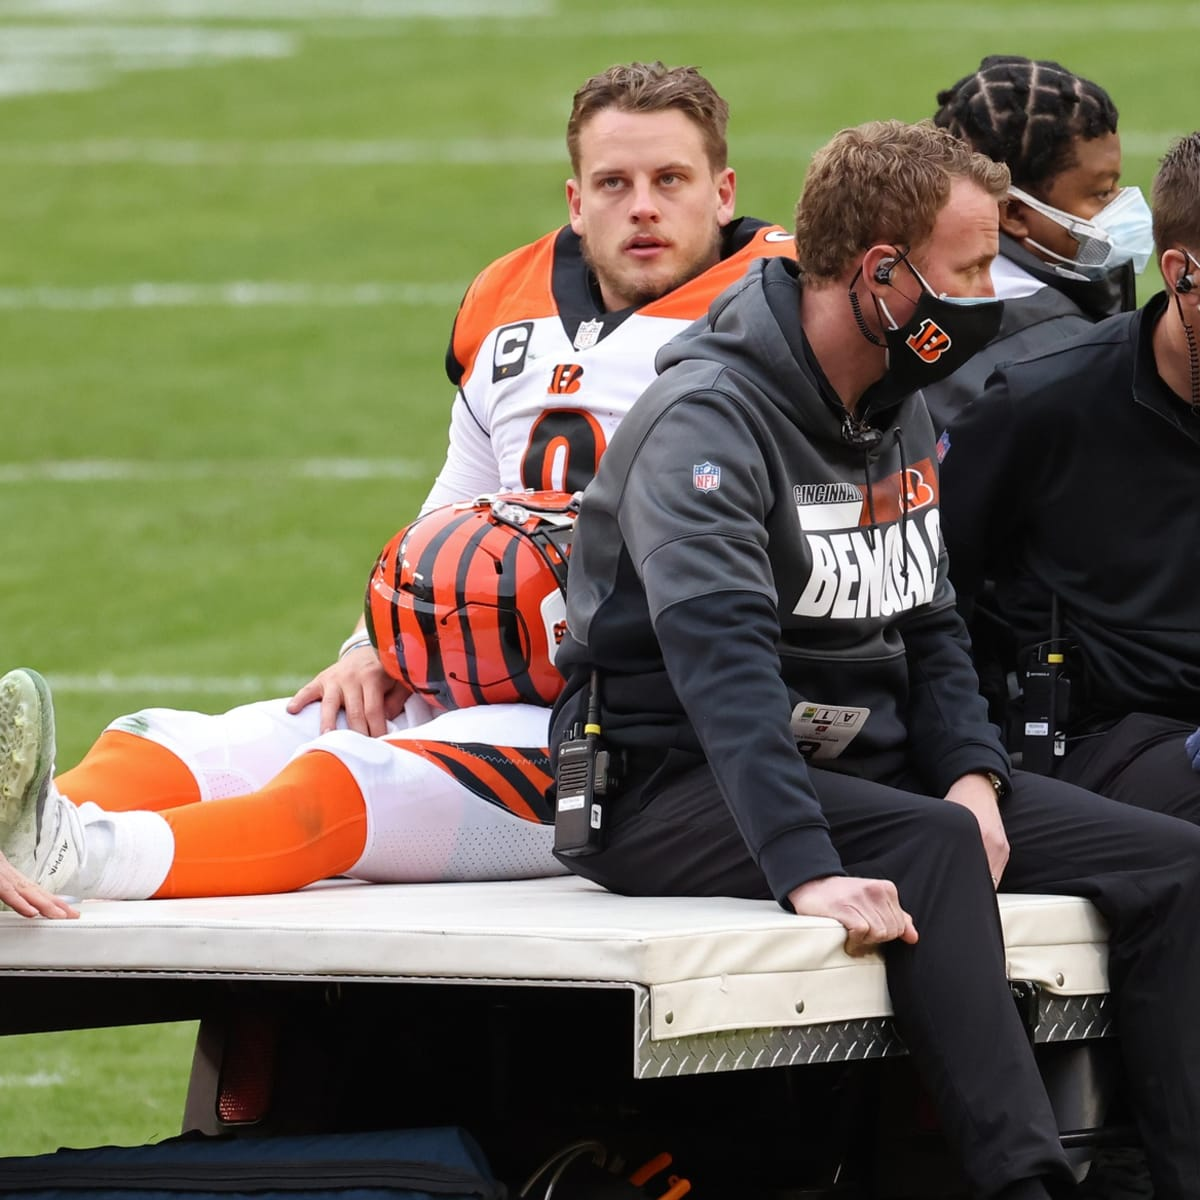 Expert Insight On Joe Burrow S Surgery And Recovery Plus An In Depth Look At The New York Giants Sports Illustrated Cincinnati Bengals News Analysis And More